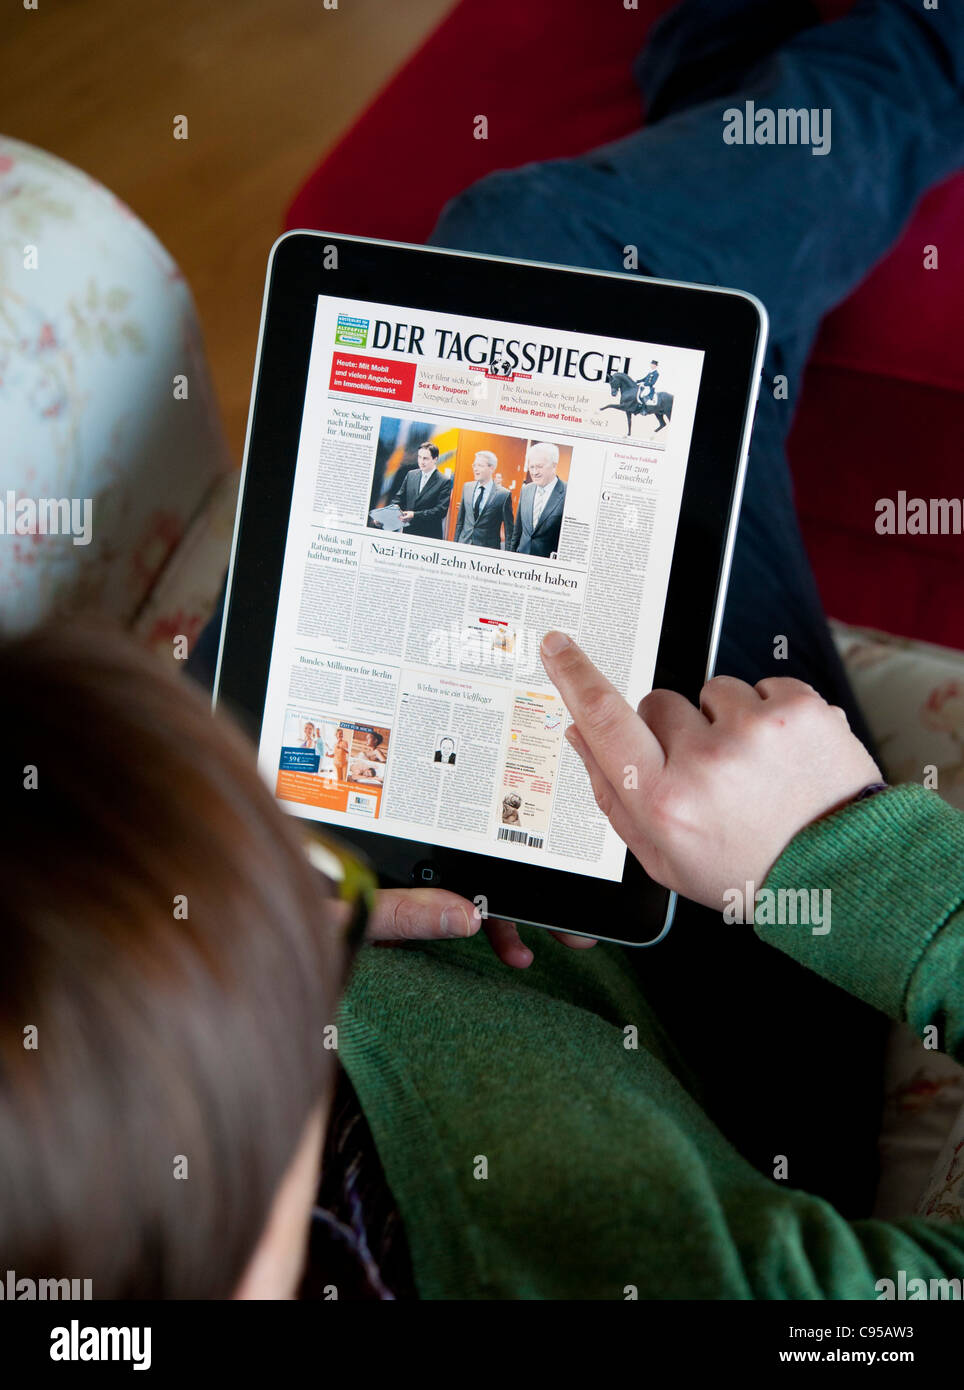 Woman using iPad tablet computer to read digital edition of Der Tagesspiegel newspaper in Germany - Stock Image